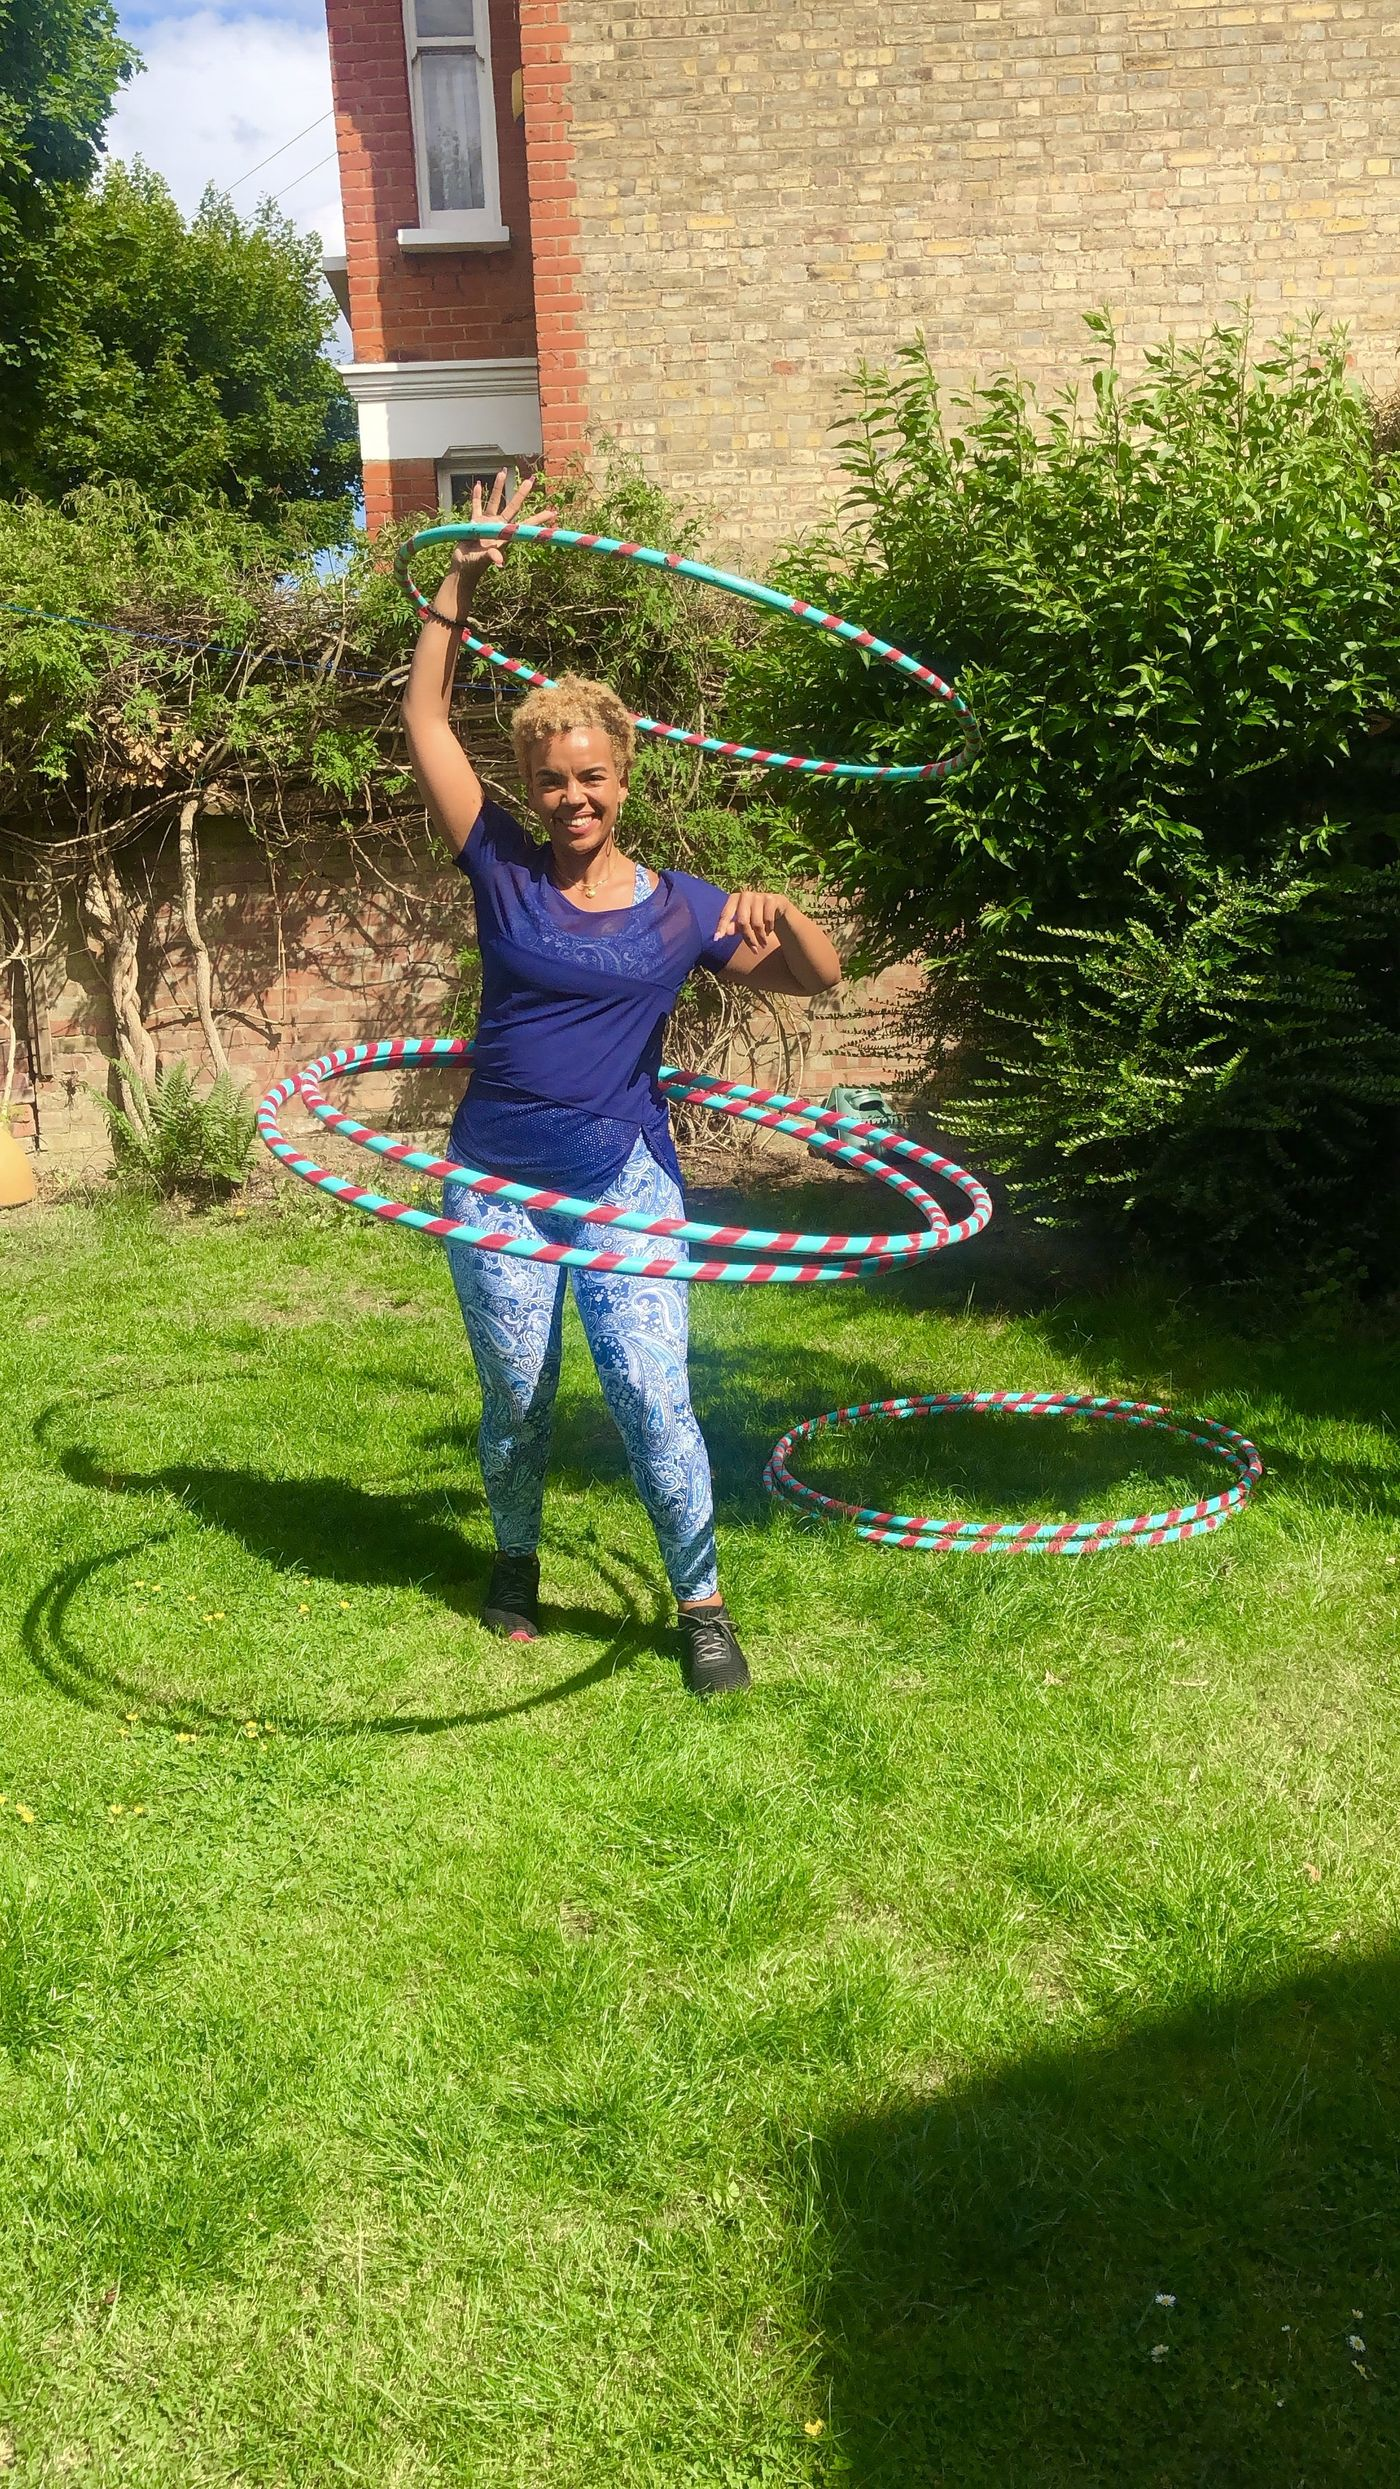 Hey Bua Fit community 😊  I would love to know do we have any Hula hoopers here who would like a weekly class?  Let me know.💪🏾⭕️